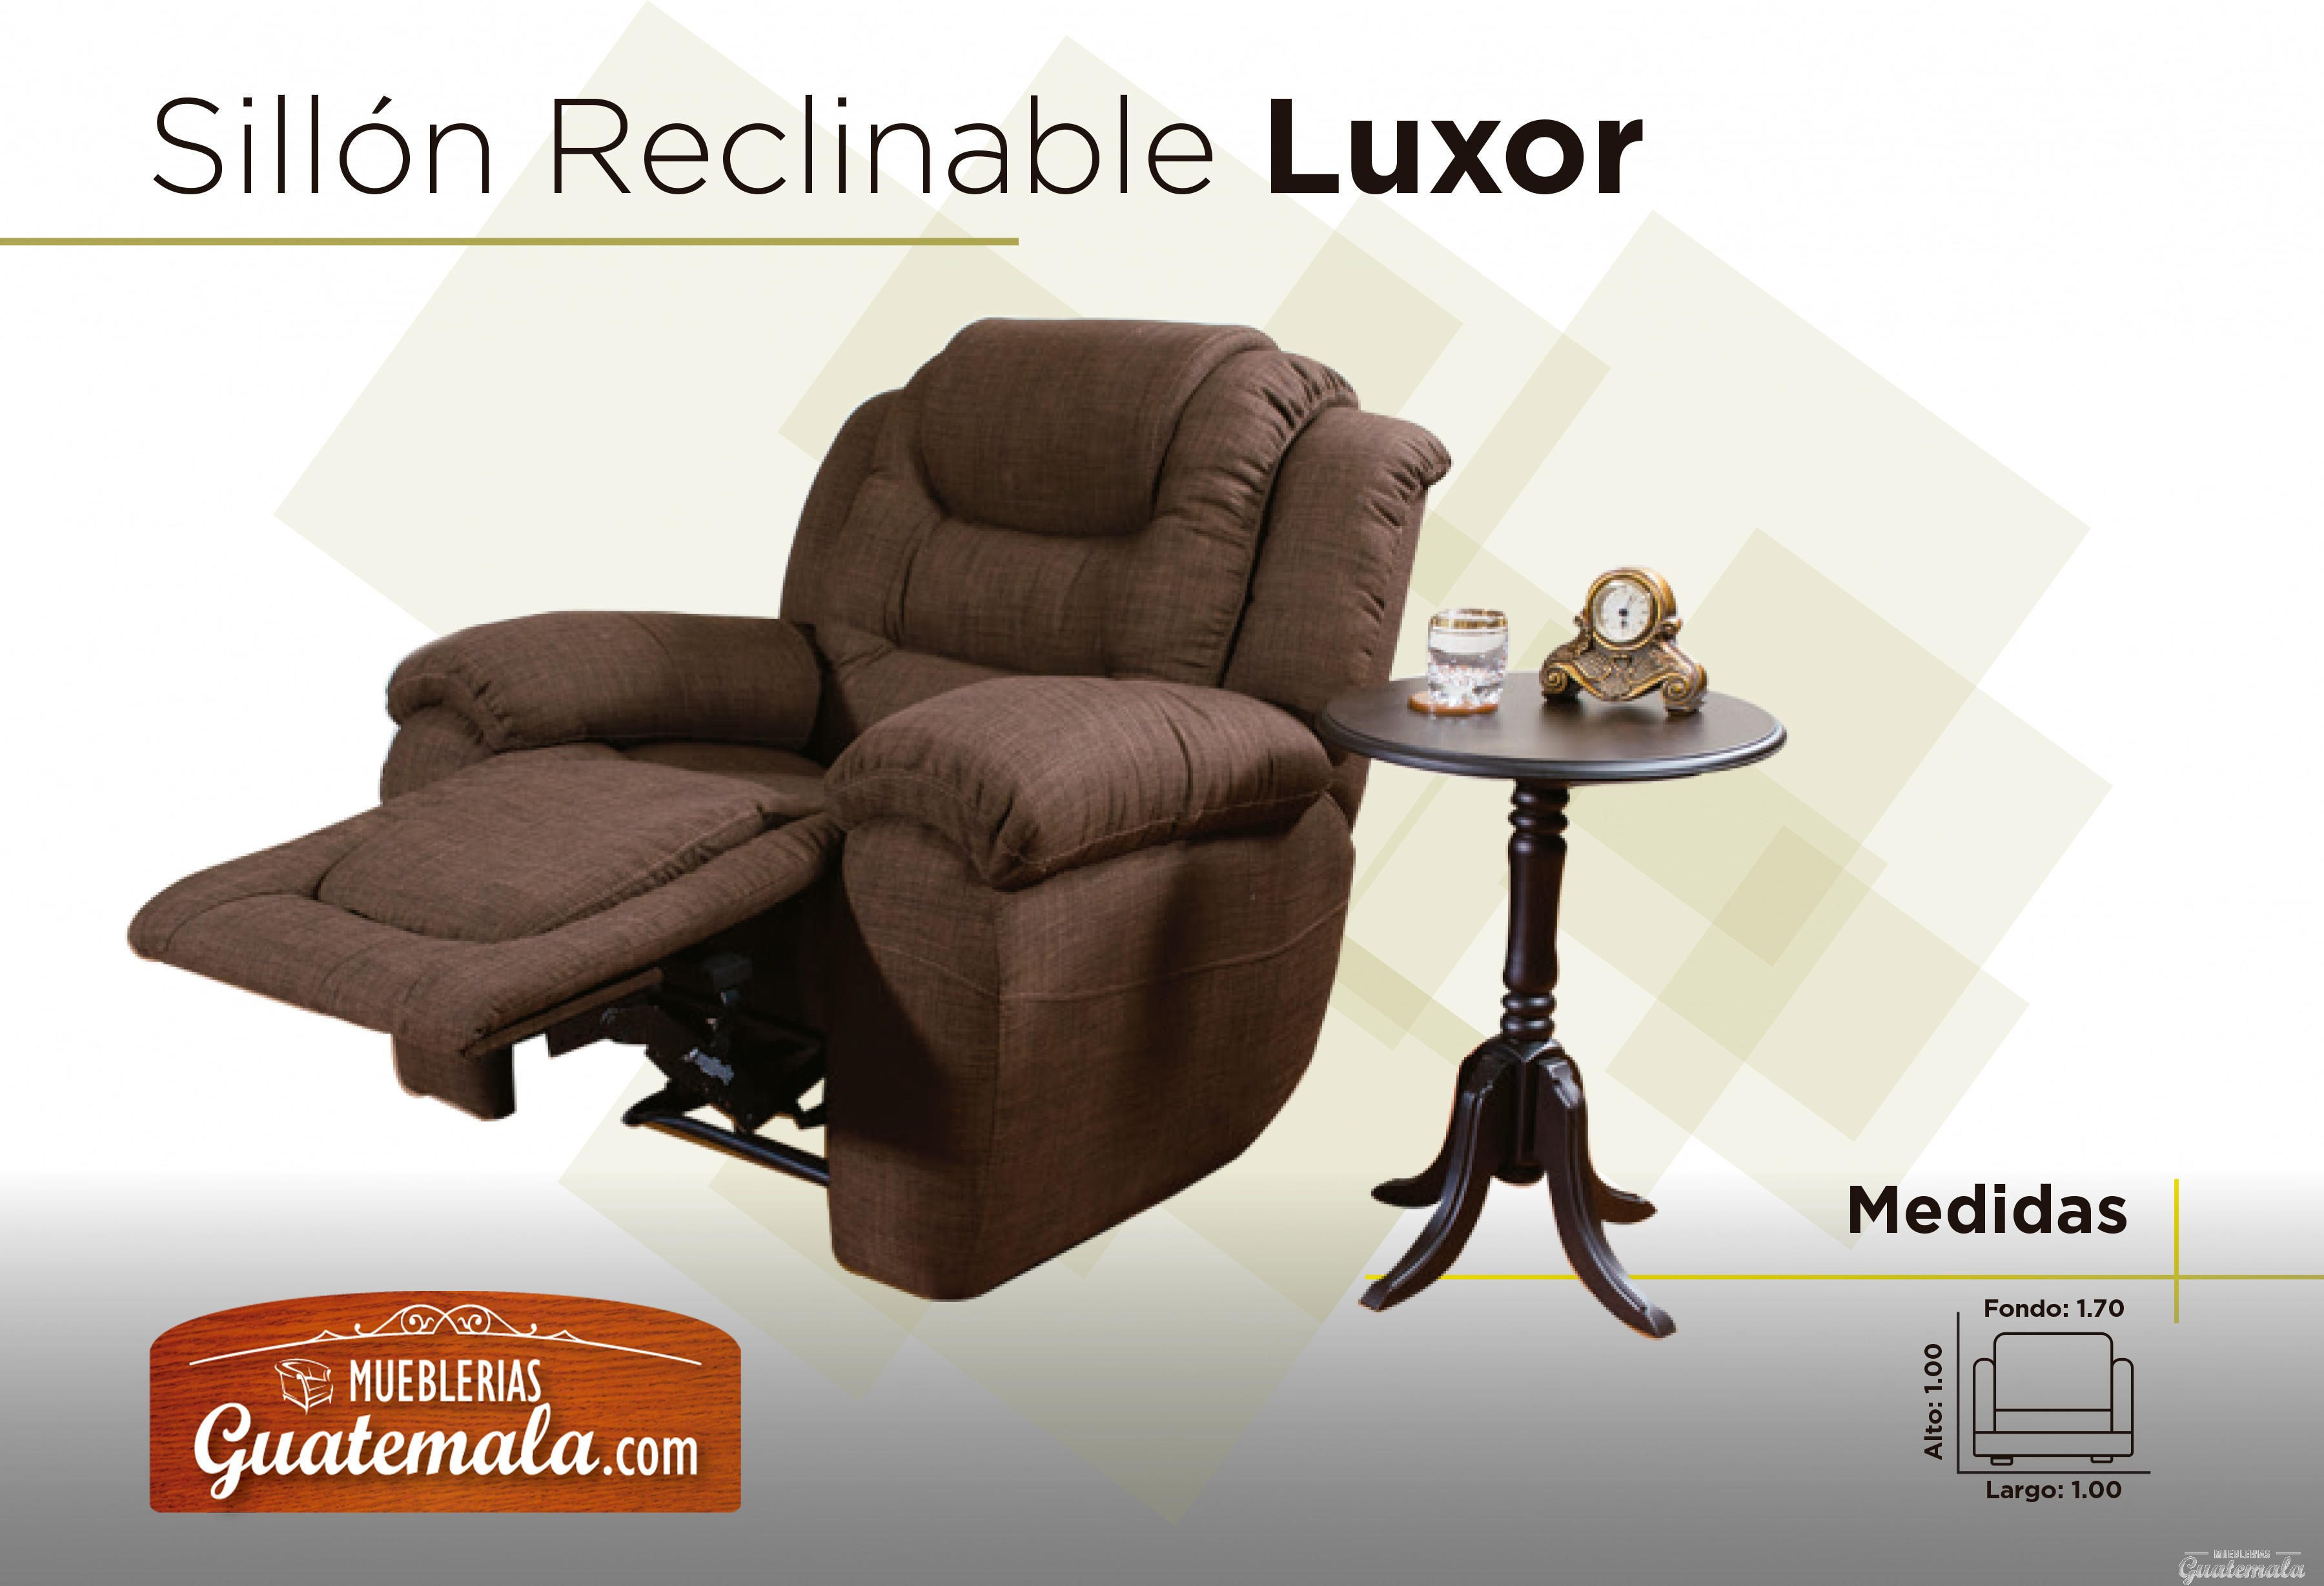 Sill n reclinable luxor for Sillon reclinable